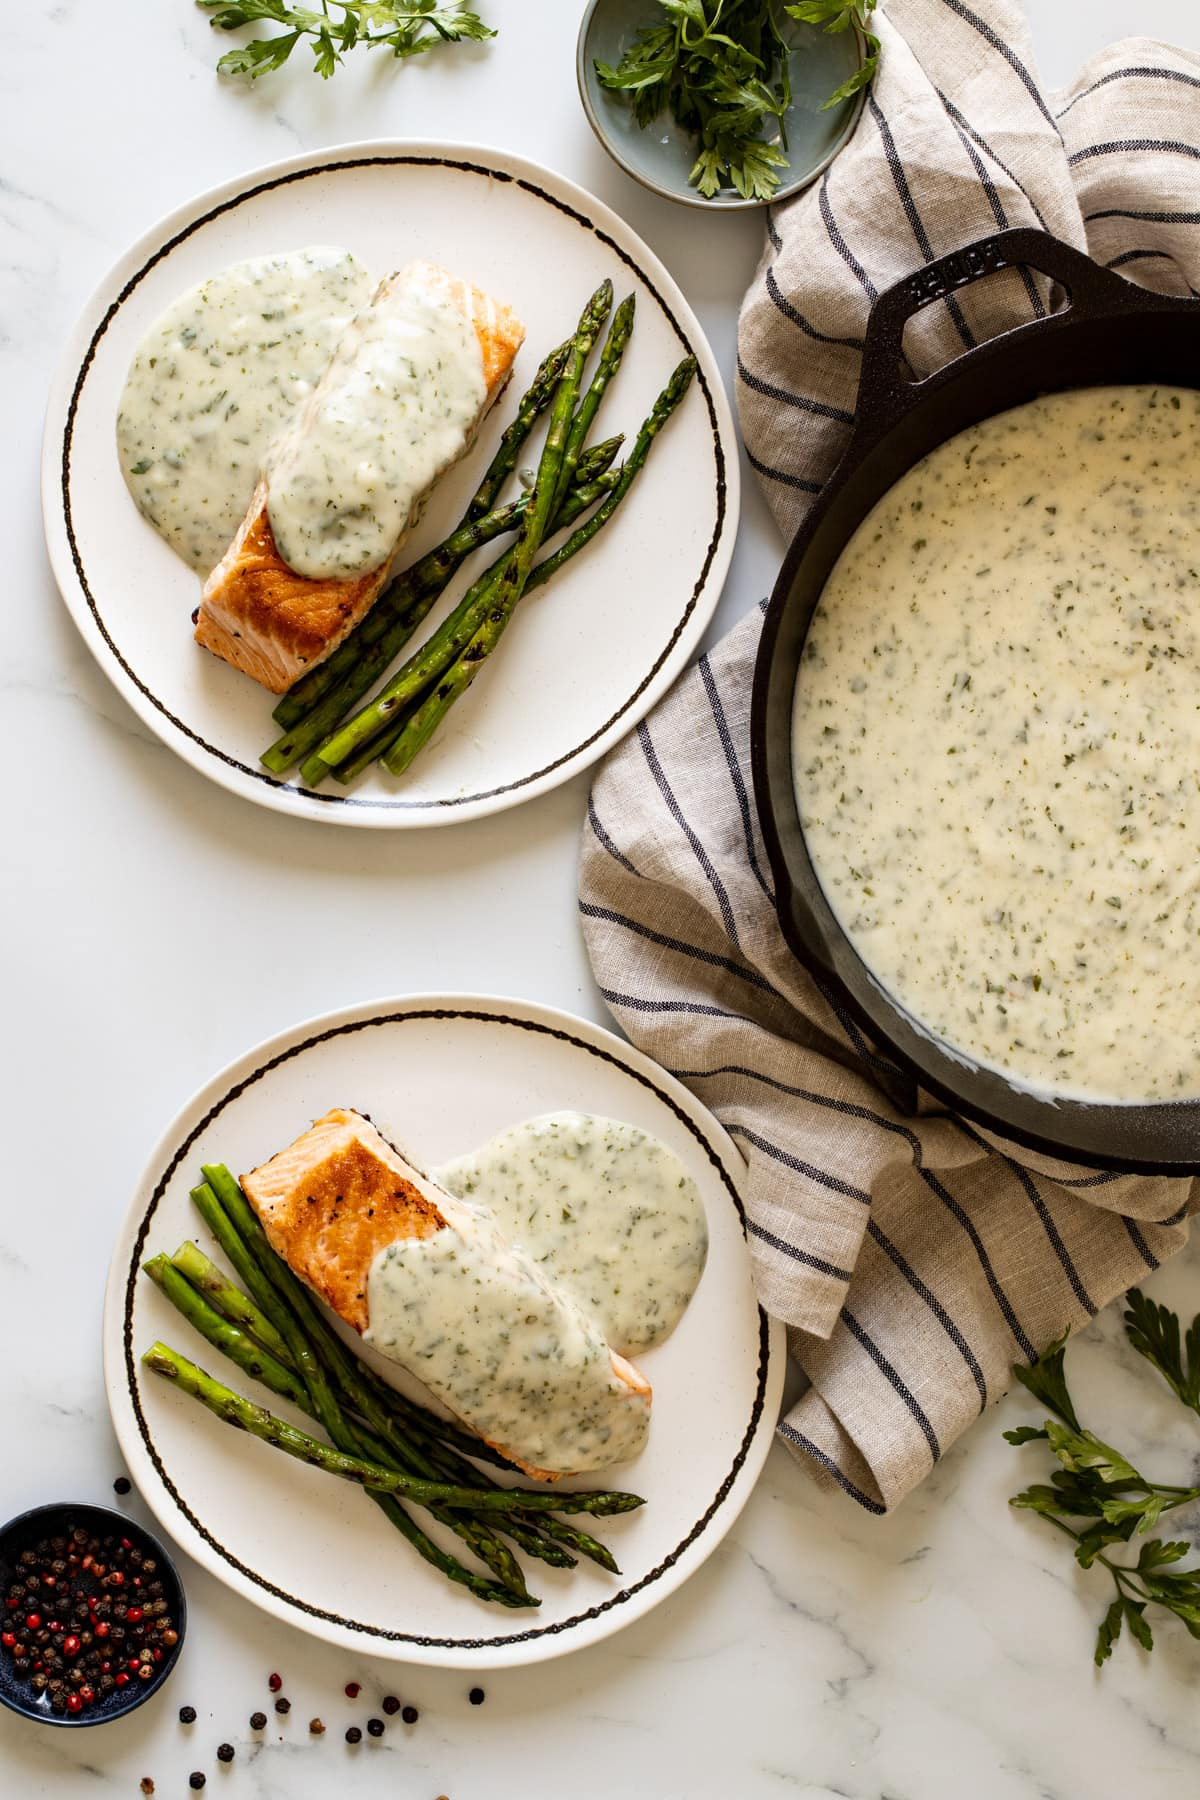 Parsley Sauce in a pan with salmon and asparagus on a plate